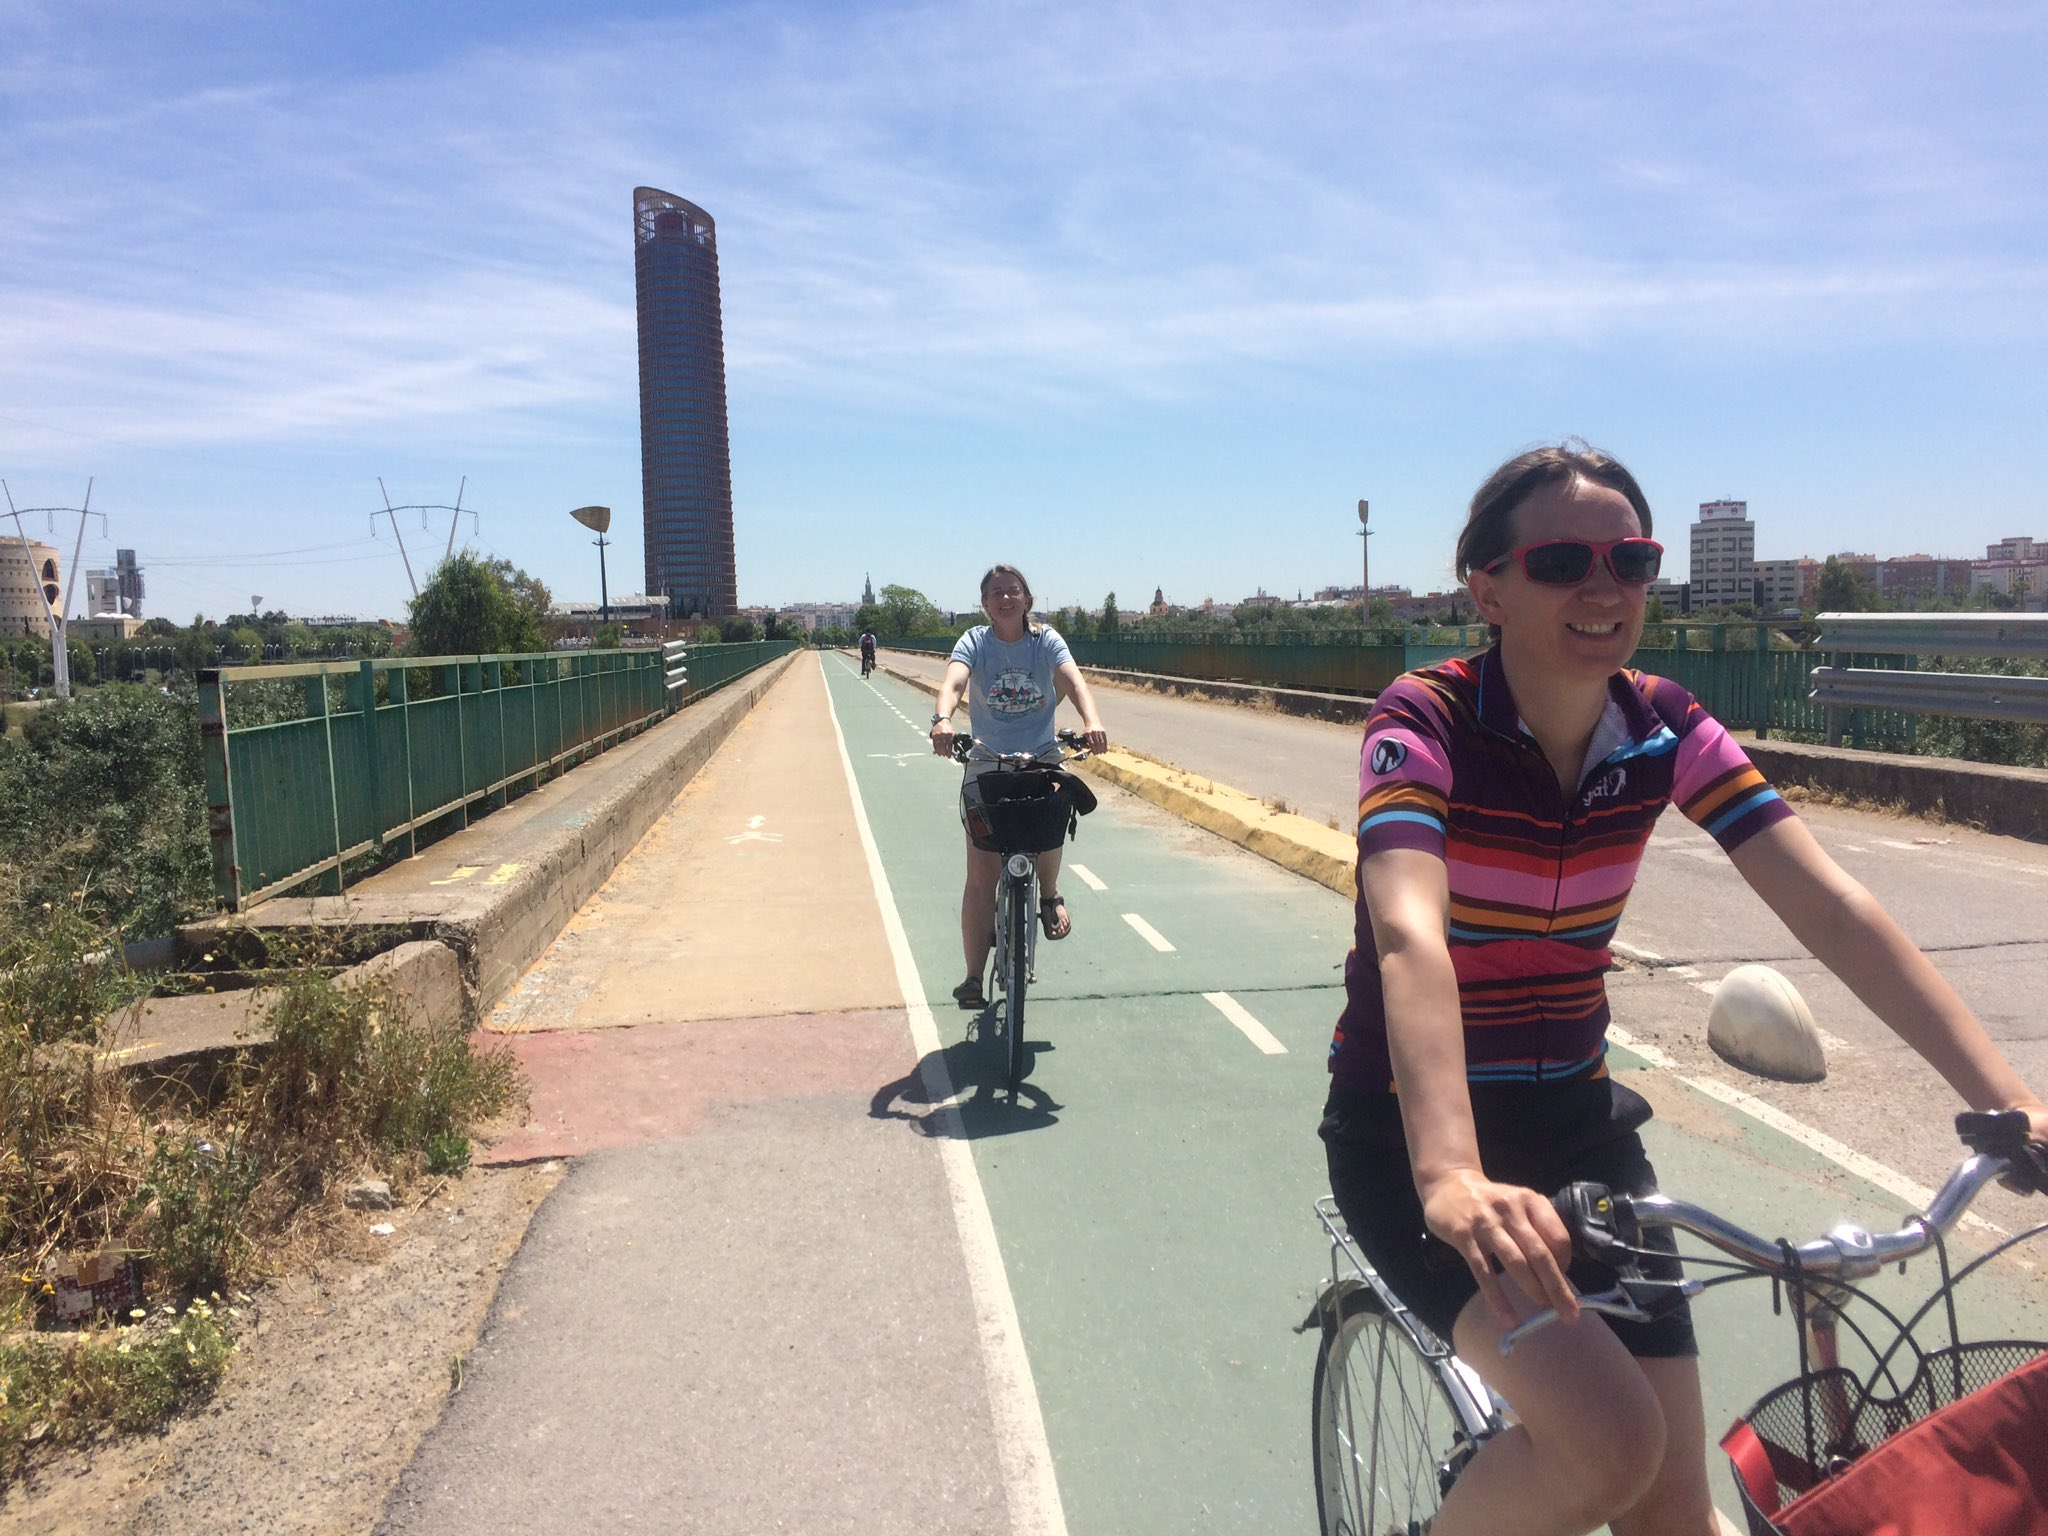 Segregated cycle route from Seville to Camas; not perfect but separate from traffic and makes the journey easy by bike #5gomadinSeville https://t.co/flkah95RB4